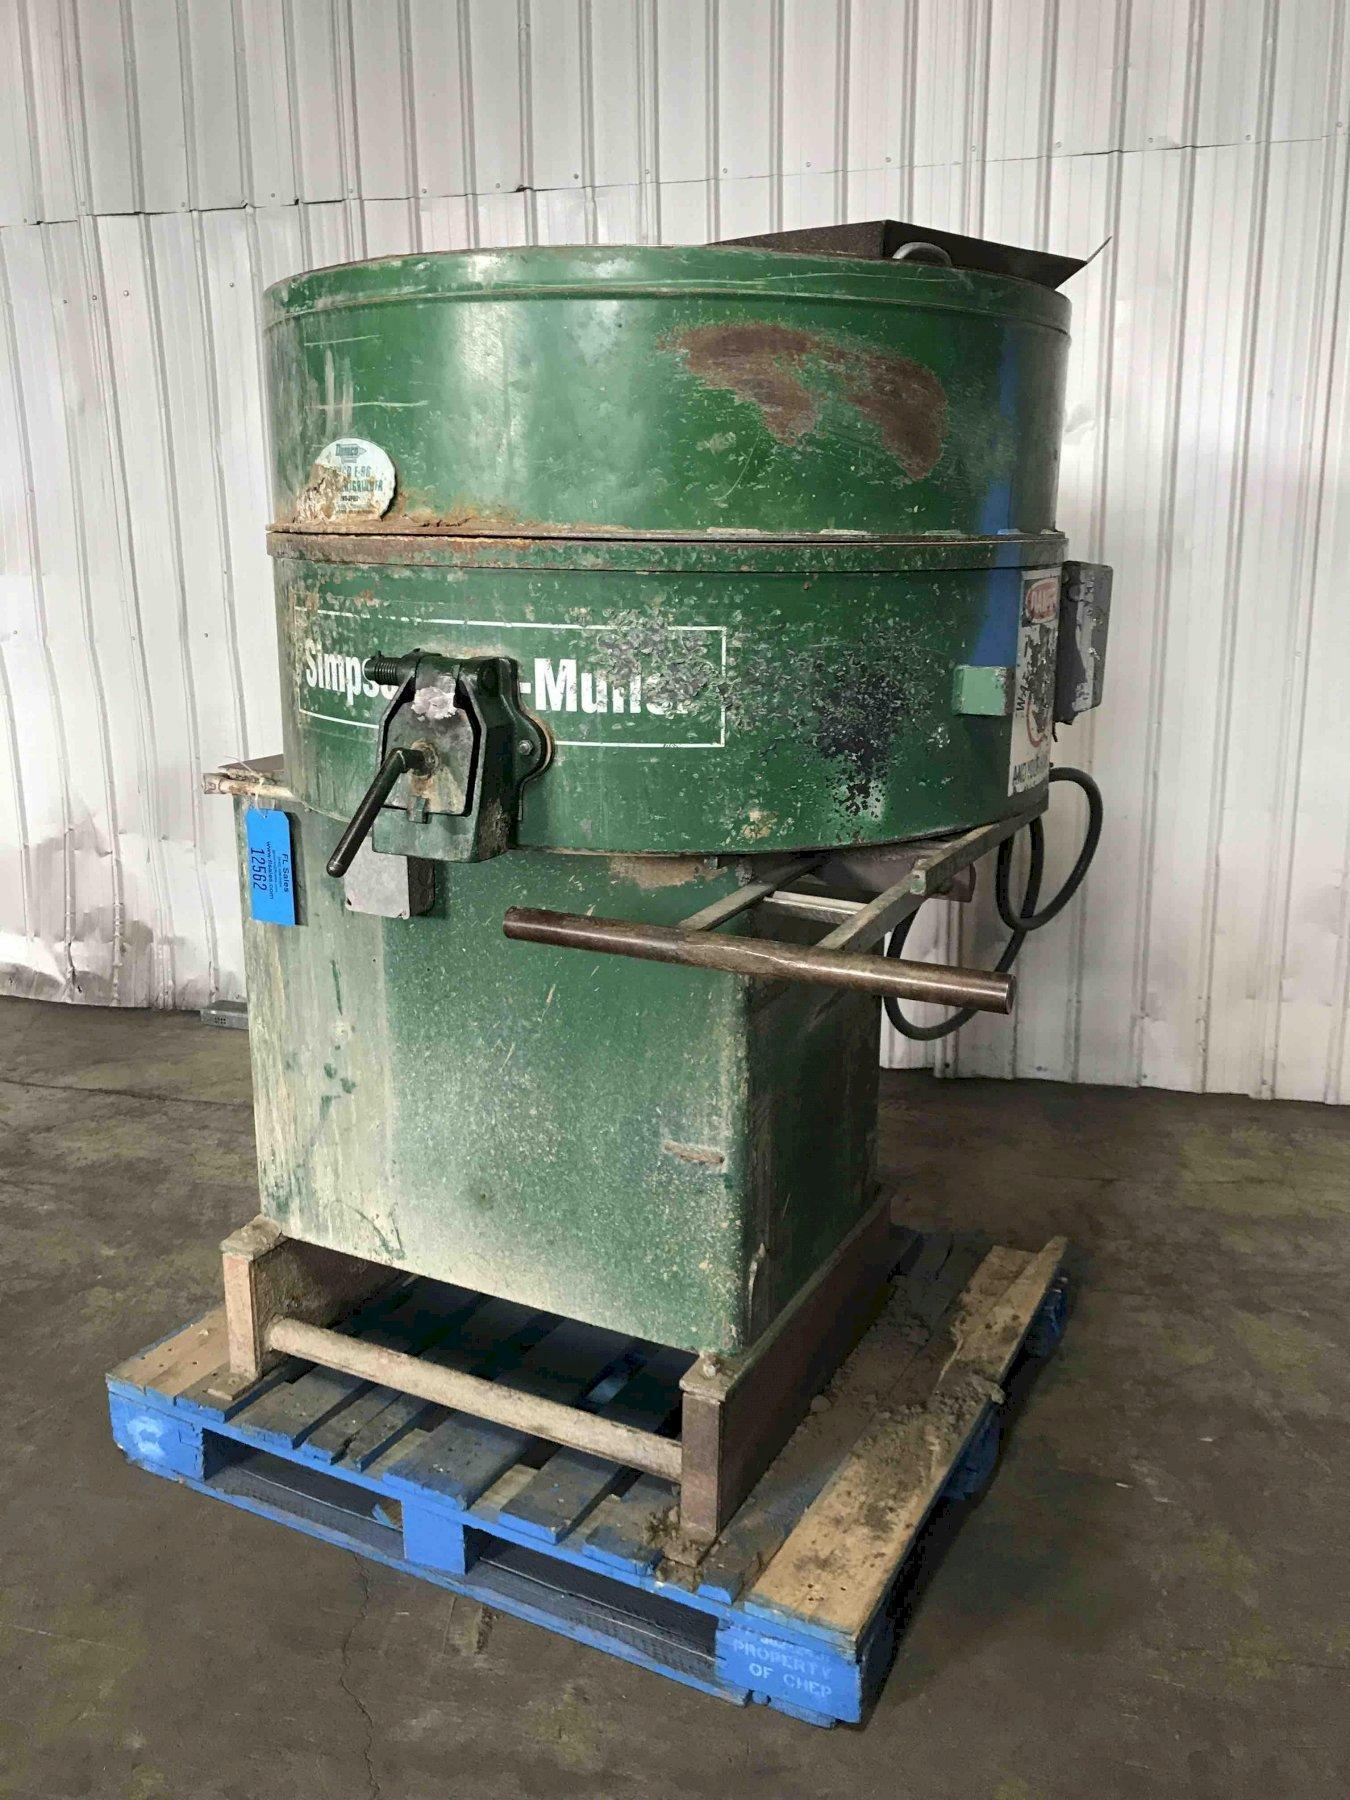 simpson model 05 stationary portomuller with dust hood and sample door, slide gate sand discharge